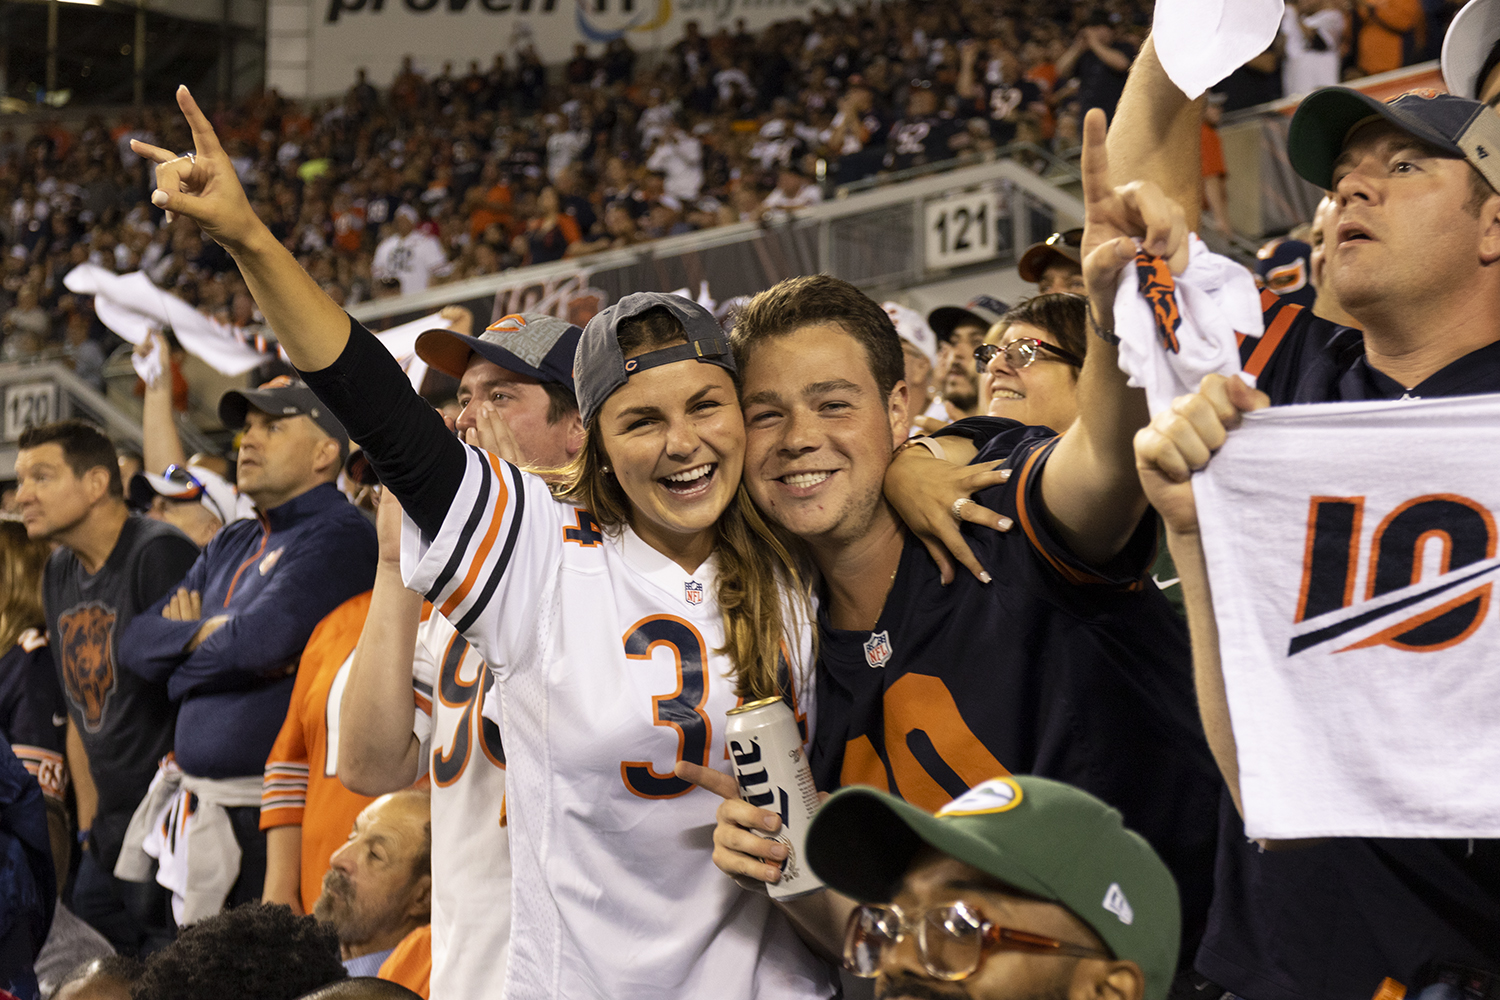 Two+Bears+fans+strike+a+pose+at+Soldier+Field+Sept.+5.